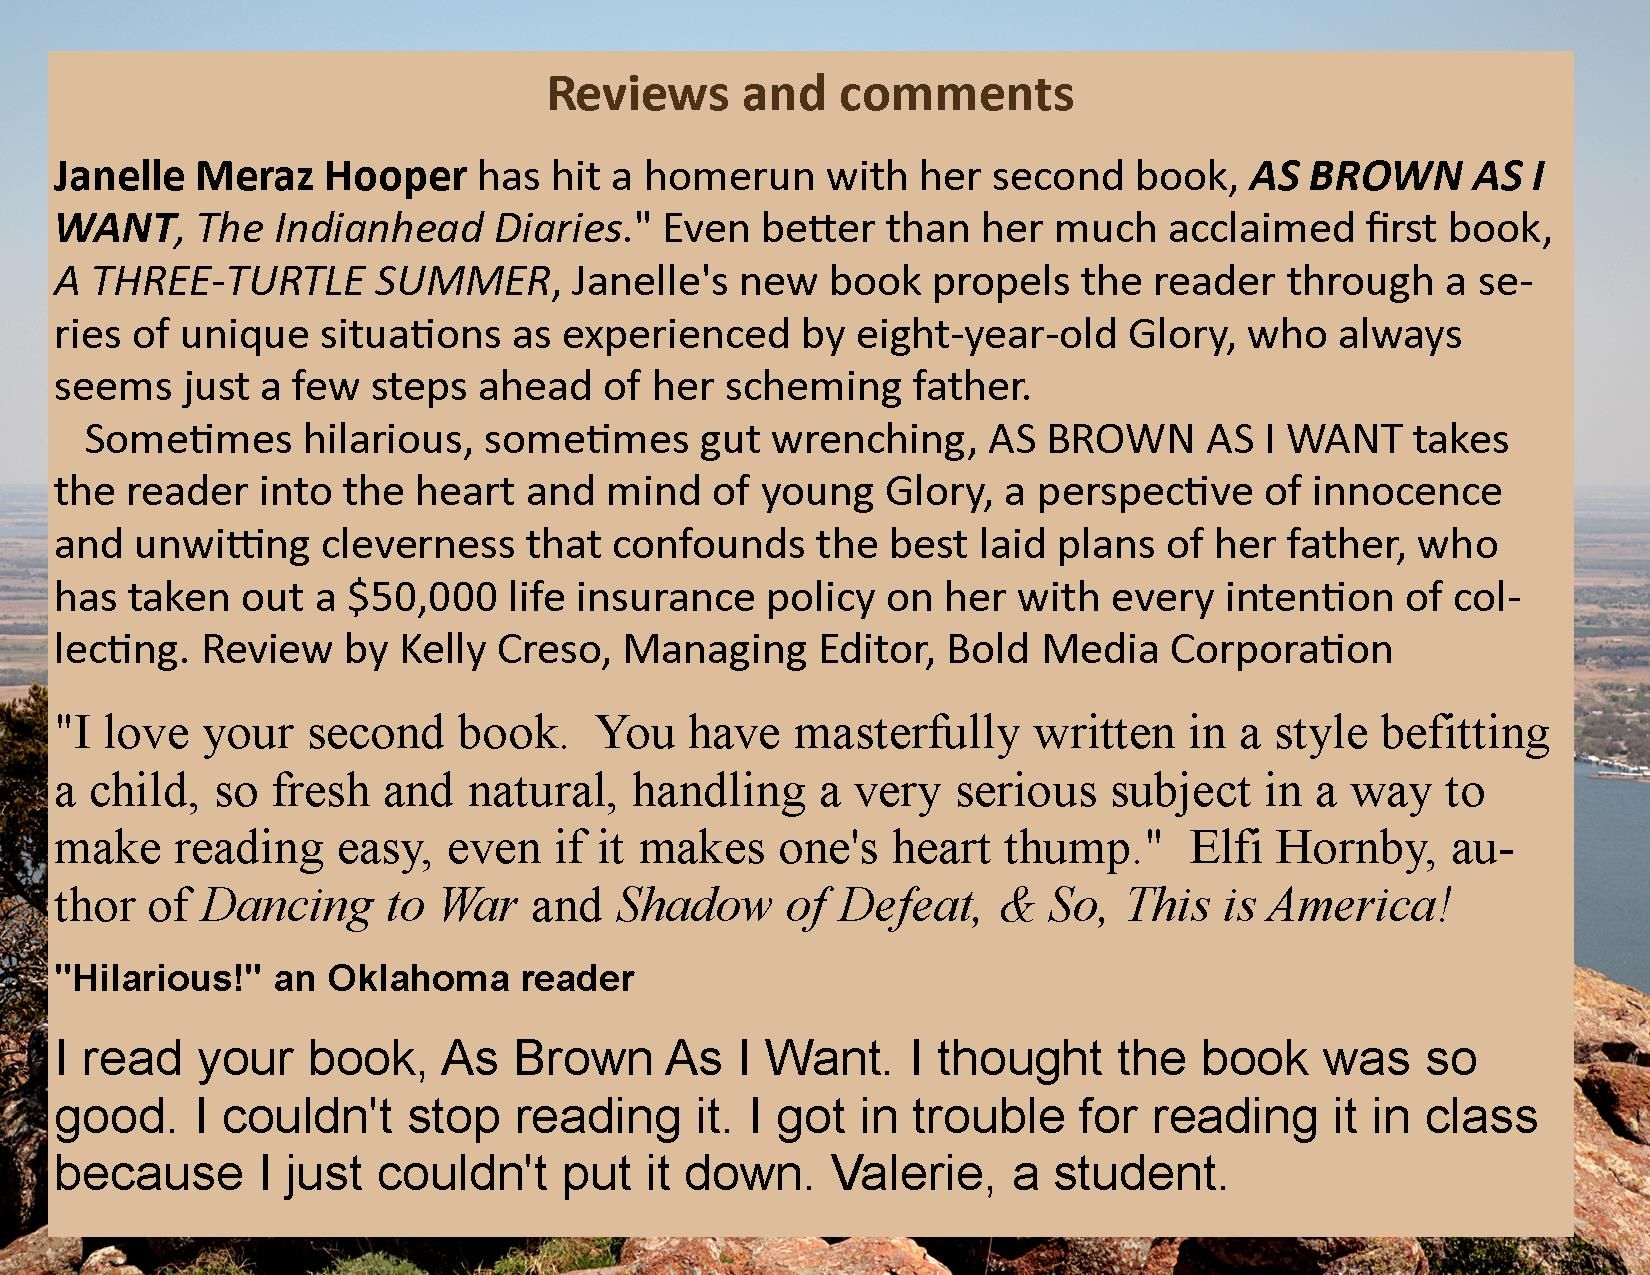 A few of the comments for As Brown As I Want: The Indianhead Diaries.